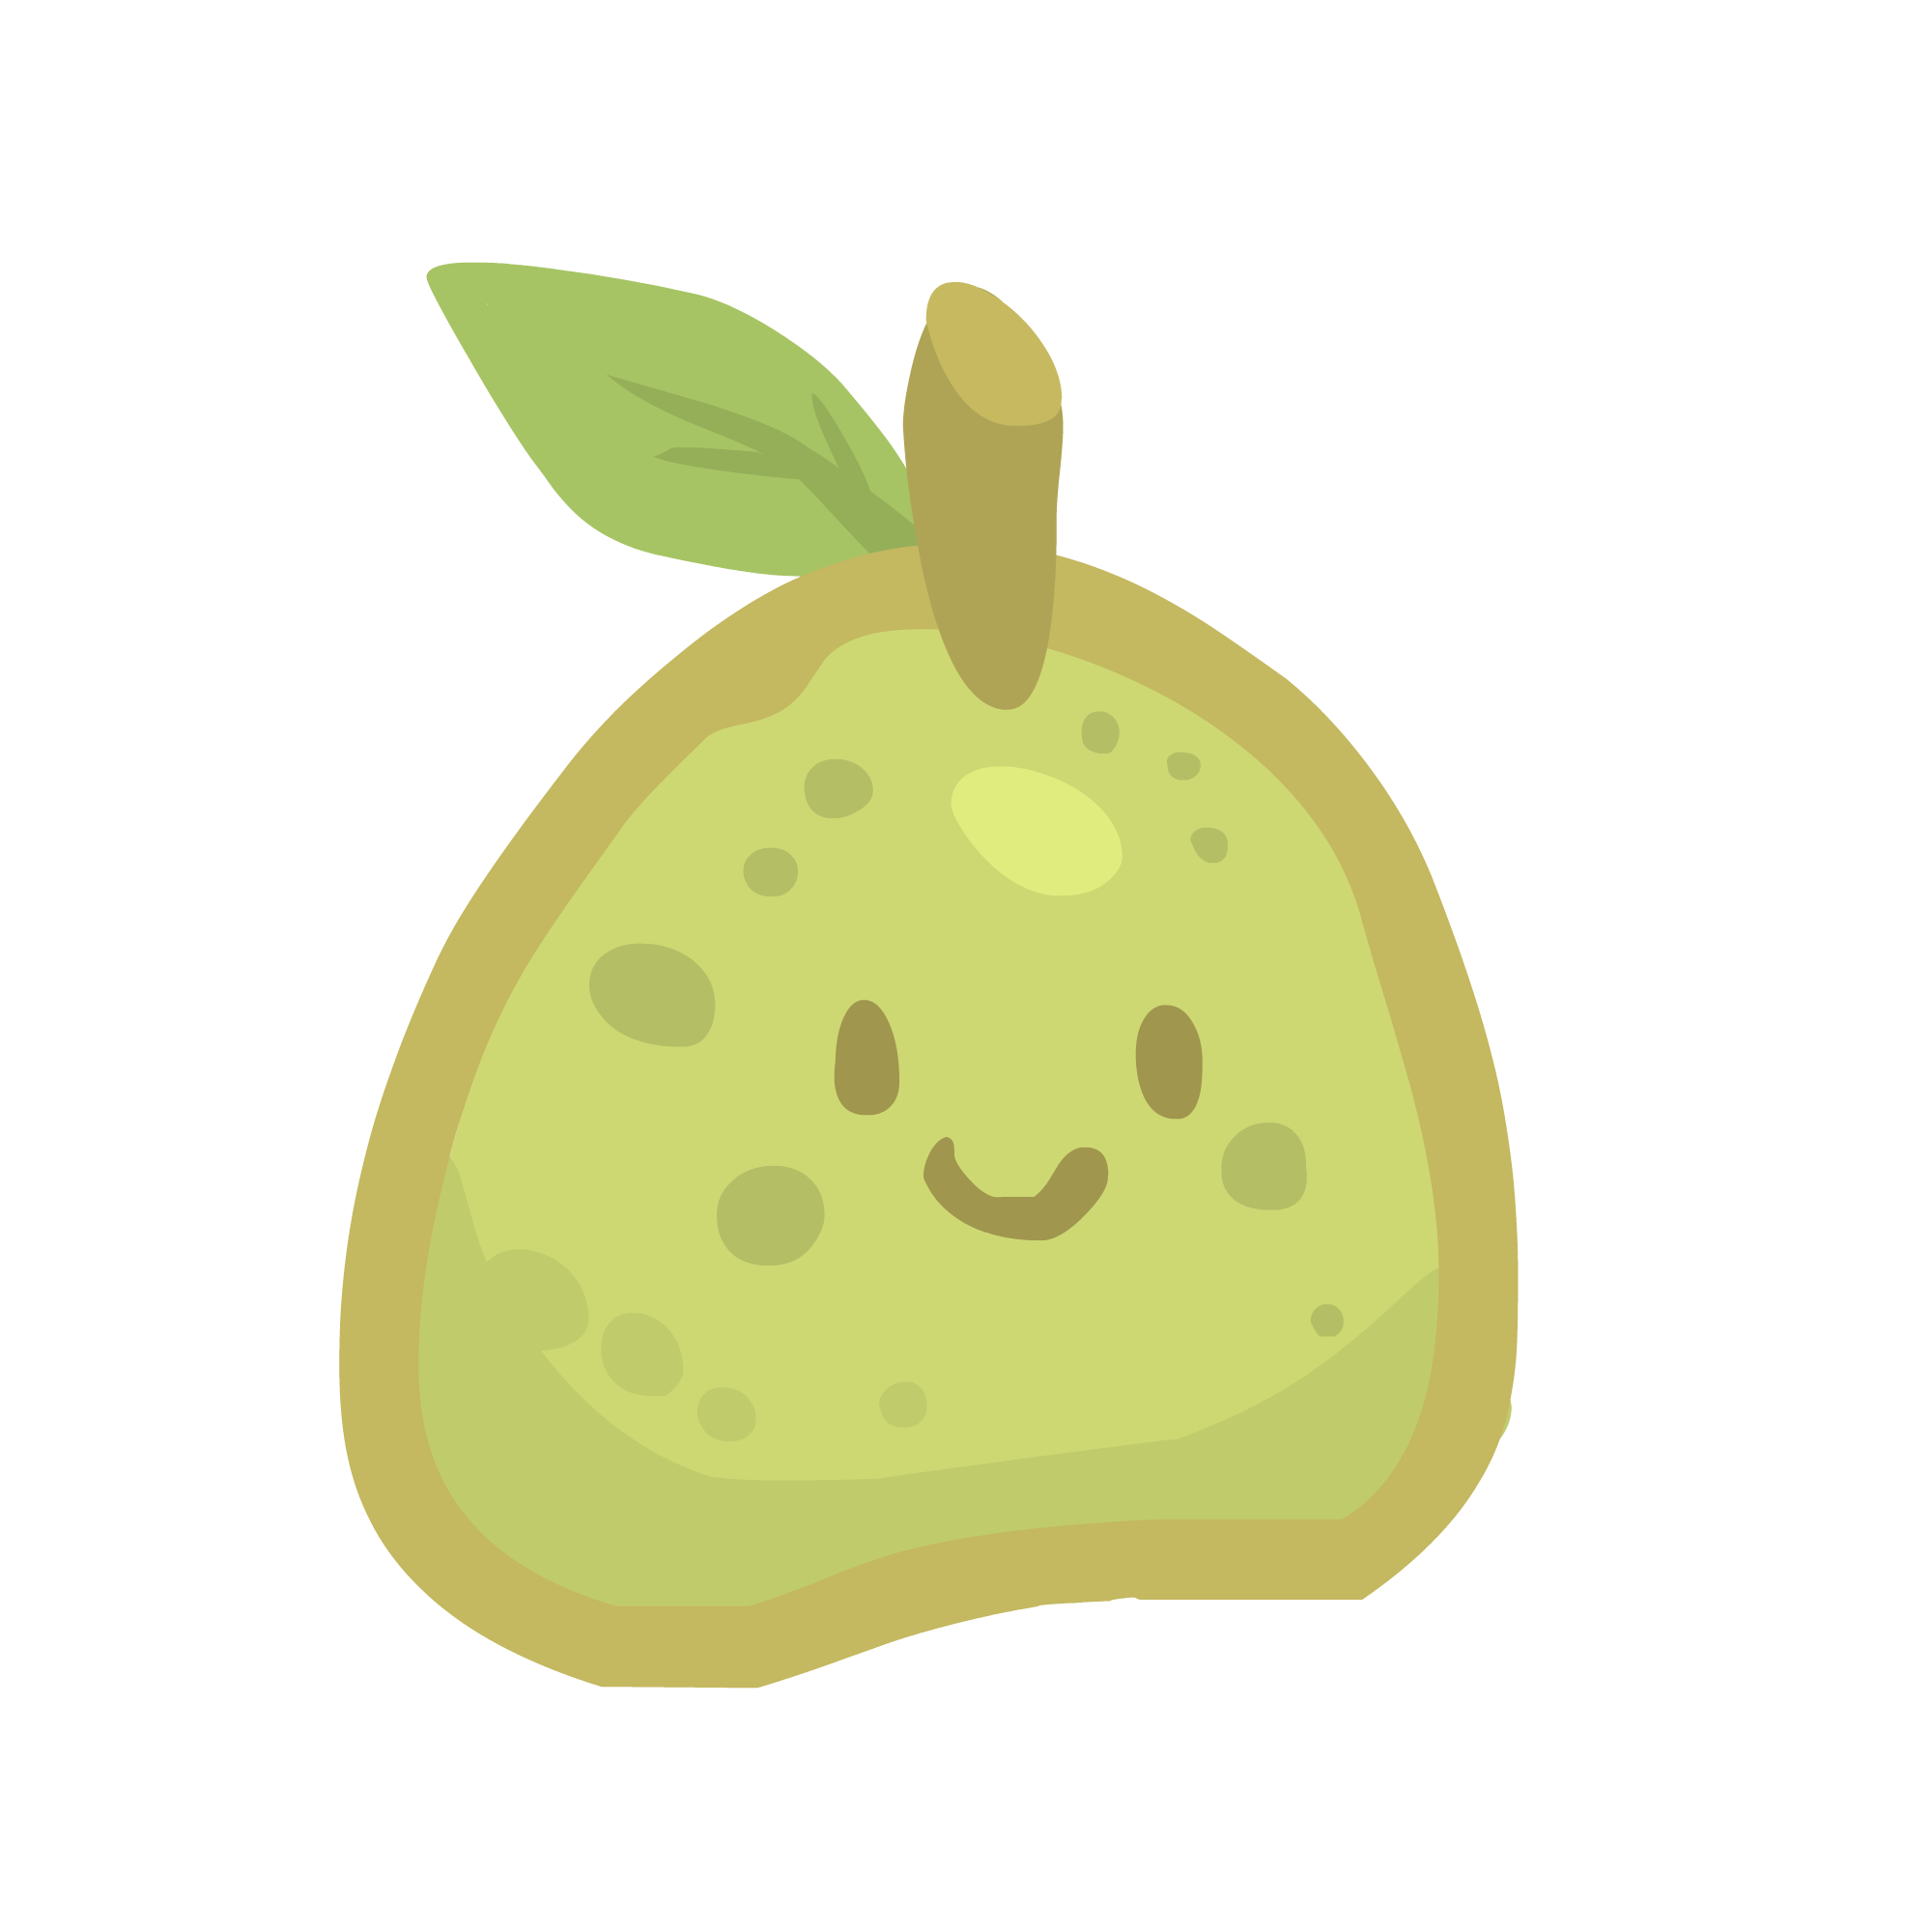 Pear clipart pear slice. Fruit this and that